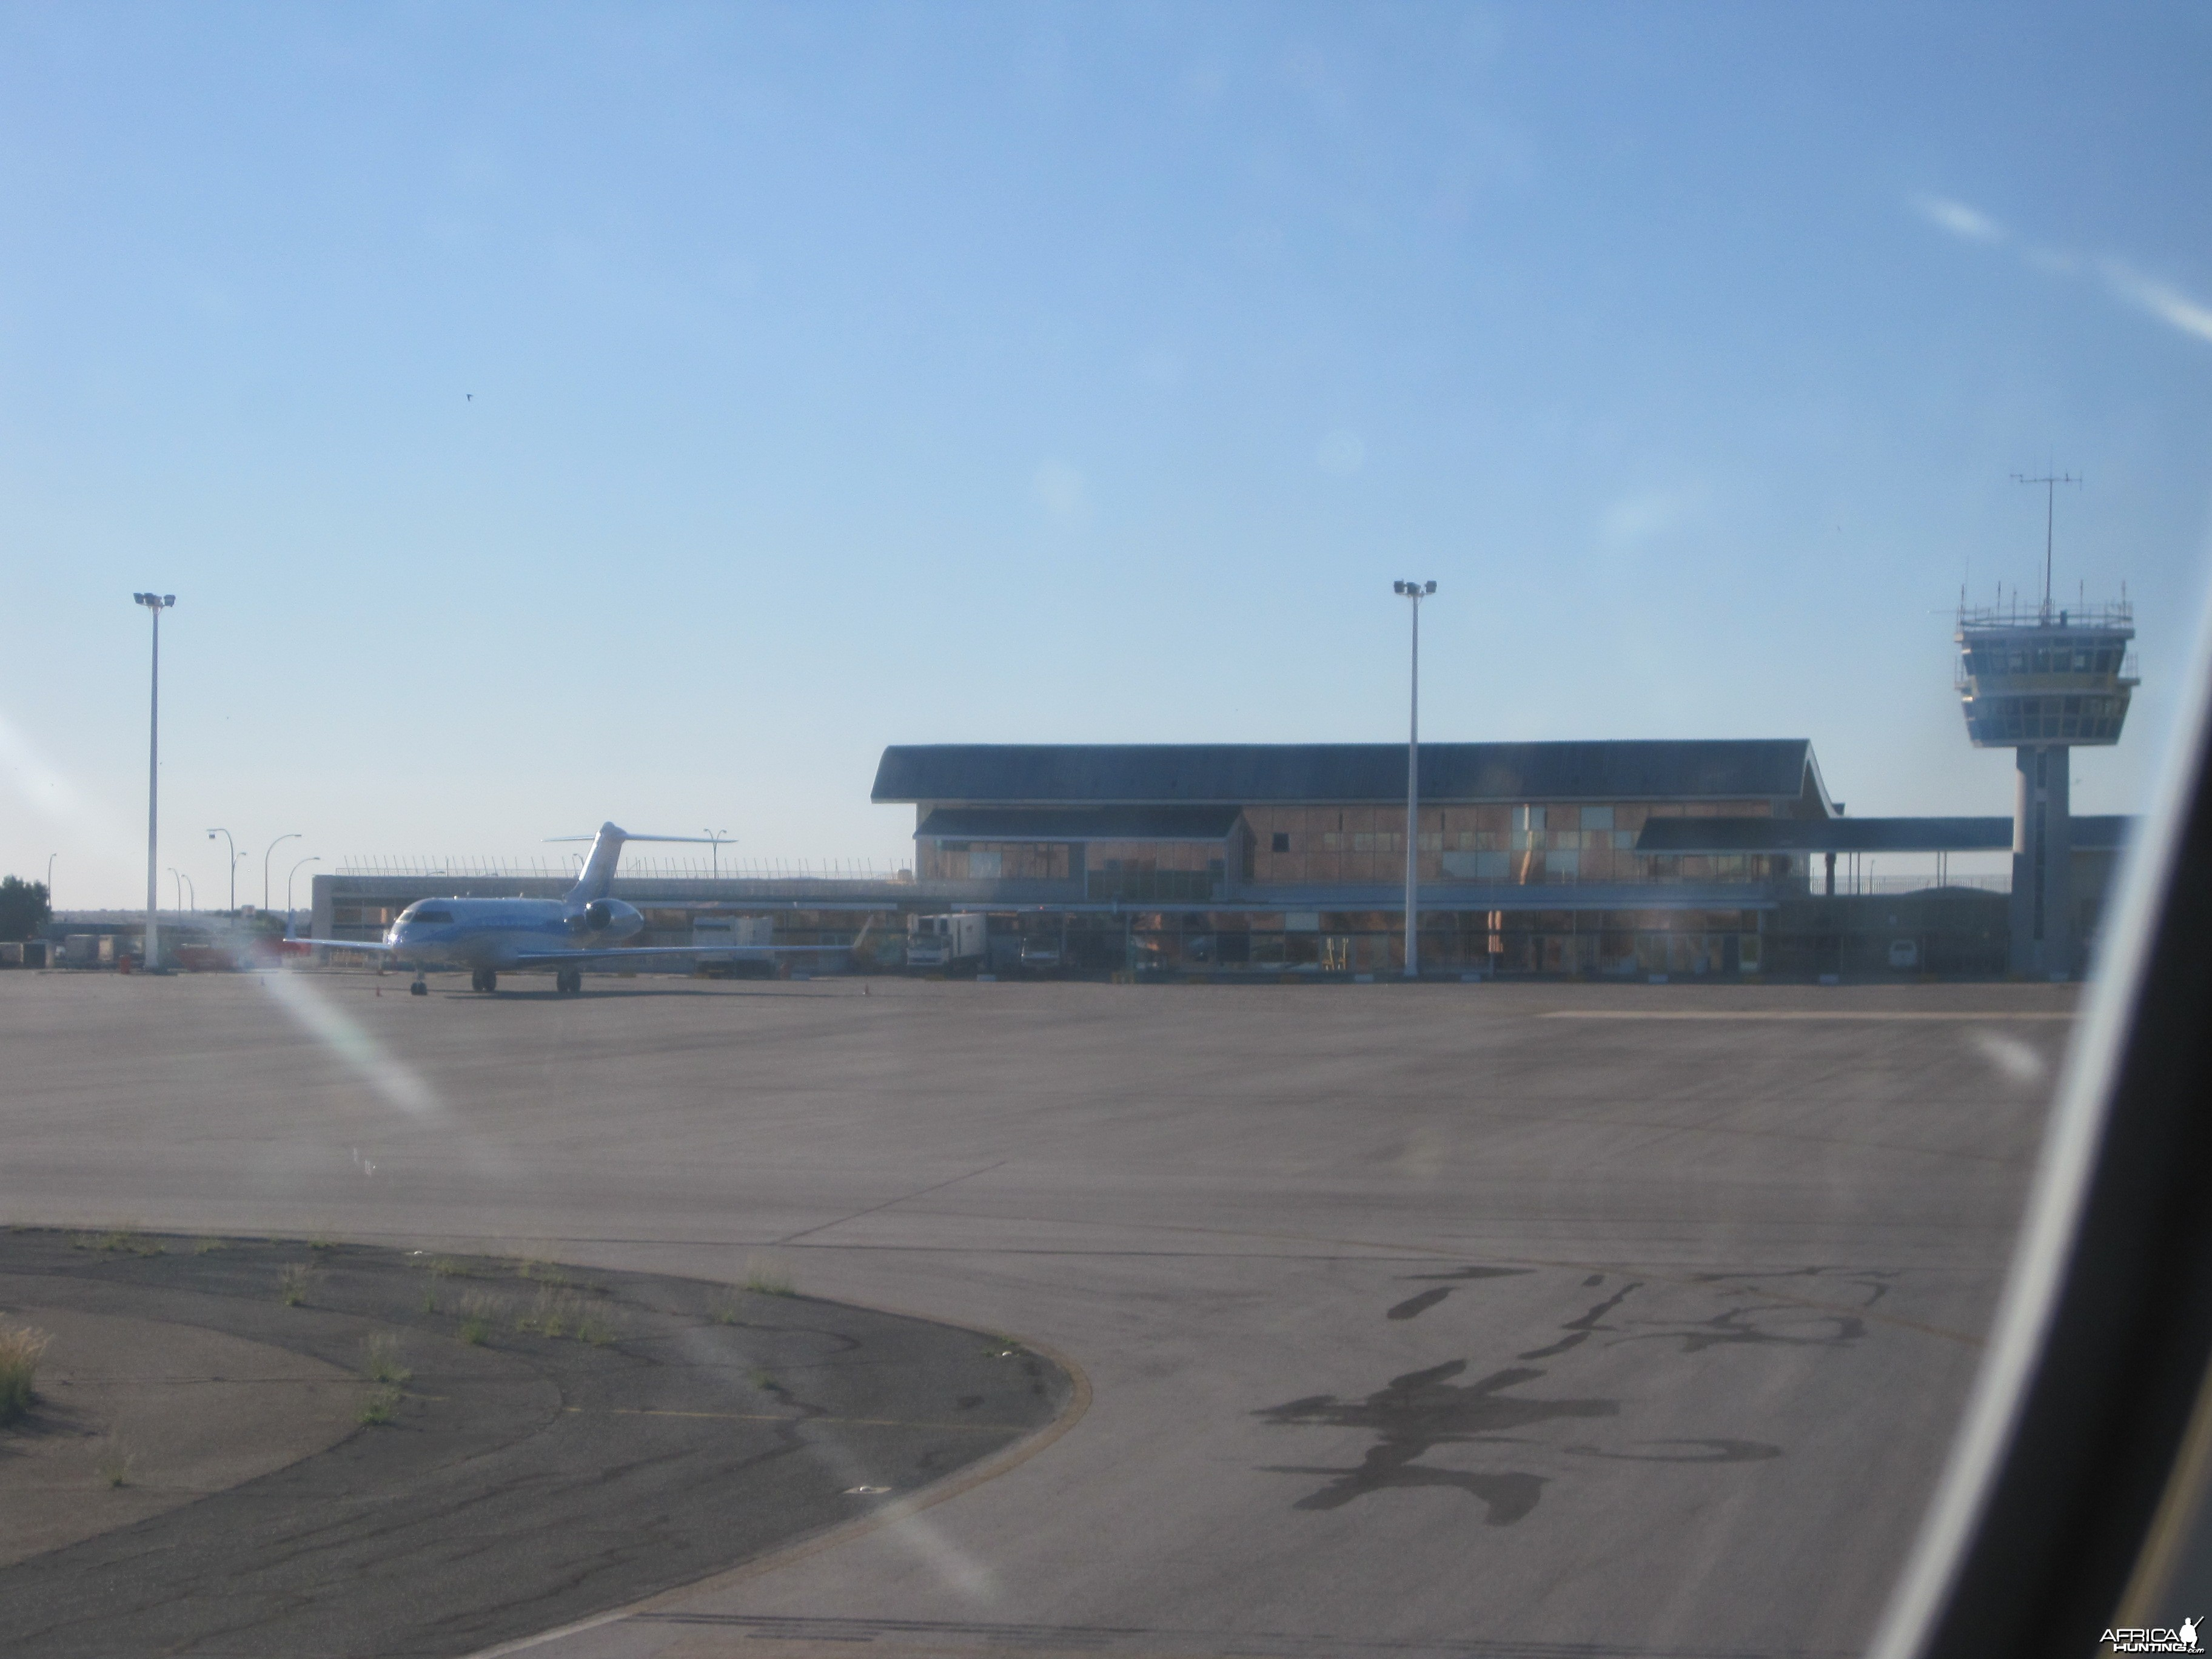 Taxing arrival to the International Airport in Windhoek, Namibia